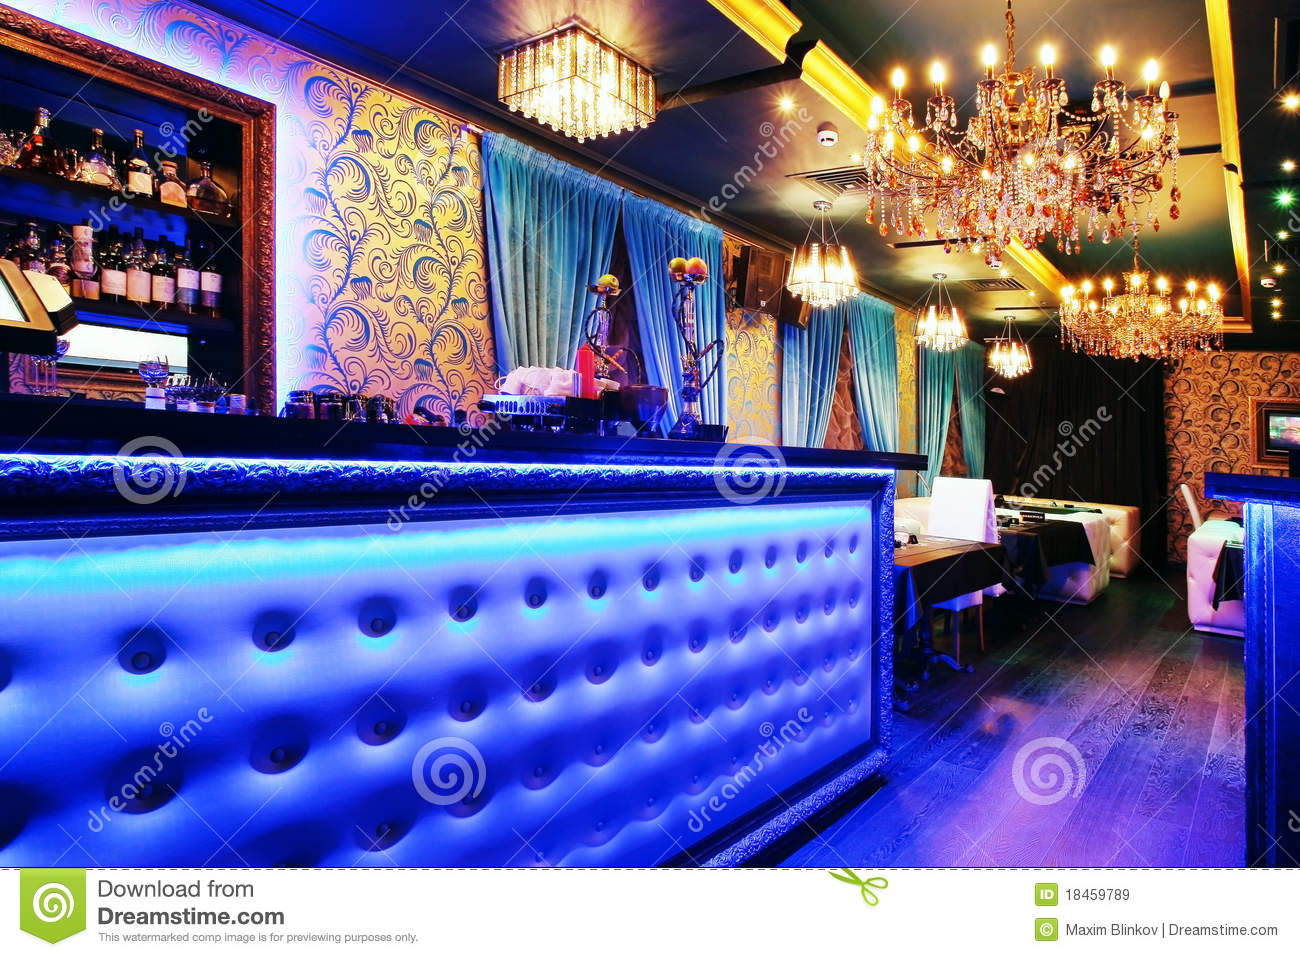 https://thumbs.dreamstime.com/z/interior-bar-18459789.jpg